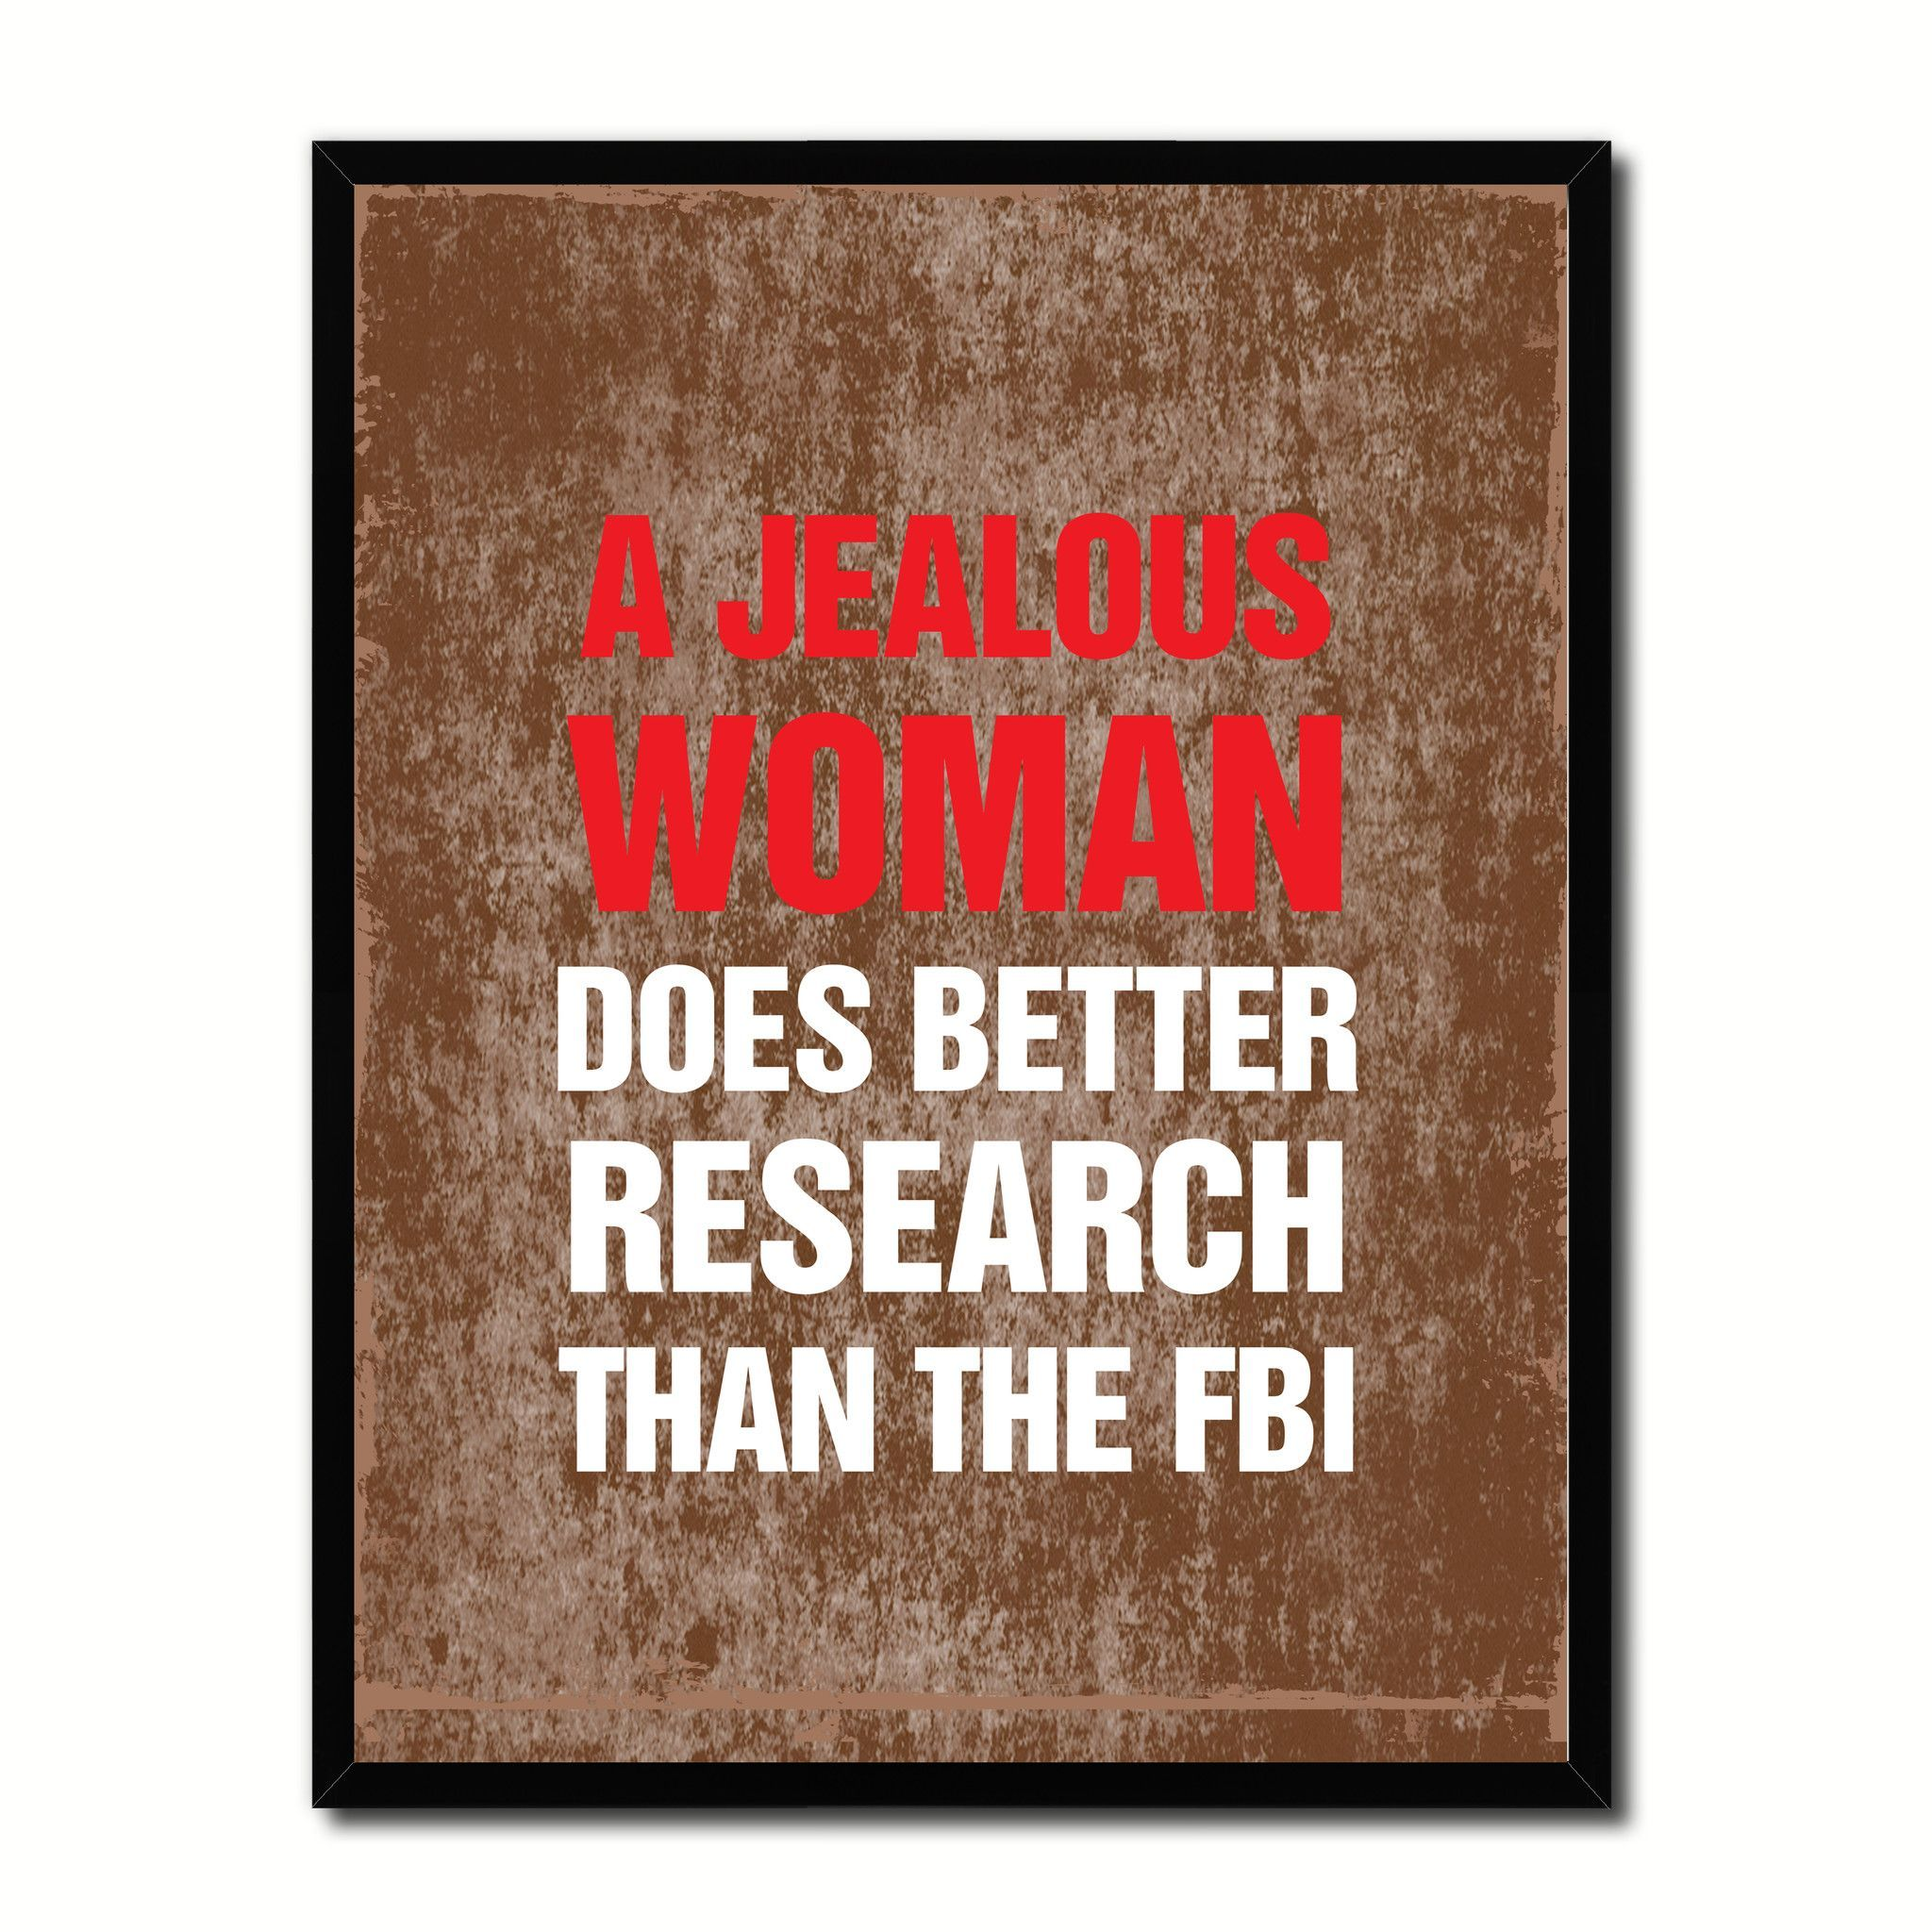 Jealous Woman Does Better Research Than The Fbi Funny Quote Saying Typo Sign Gift Ideas Home Decor Wall Art Jealous Women Funny Quotes Funny Women Quotes